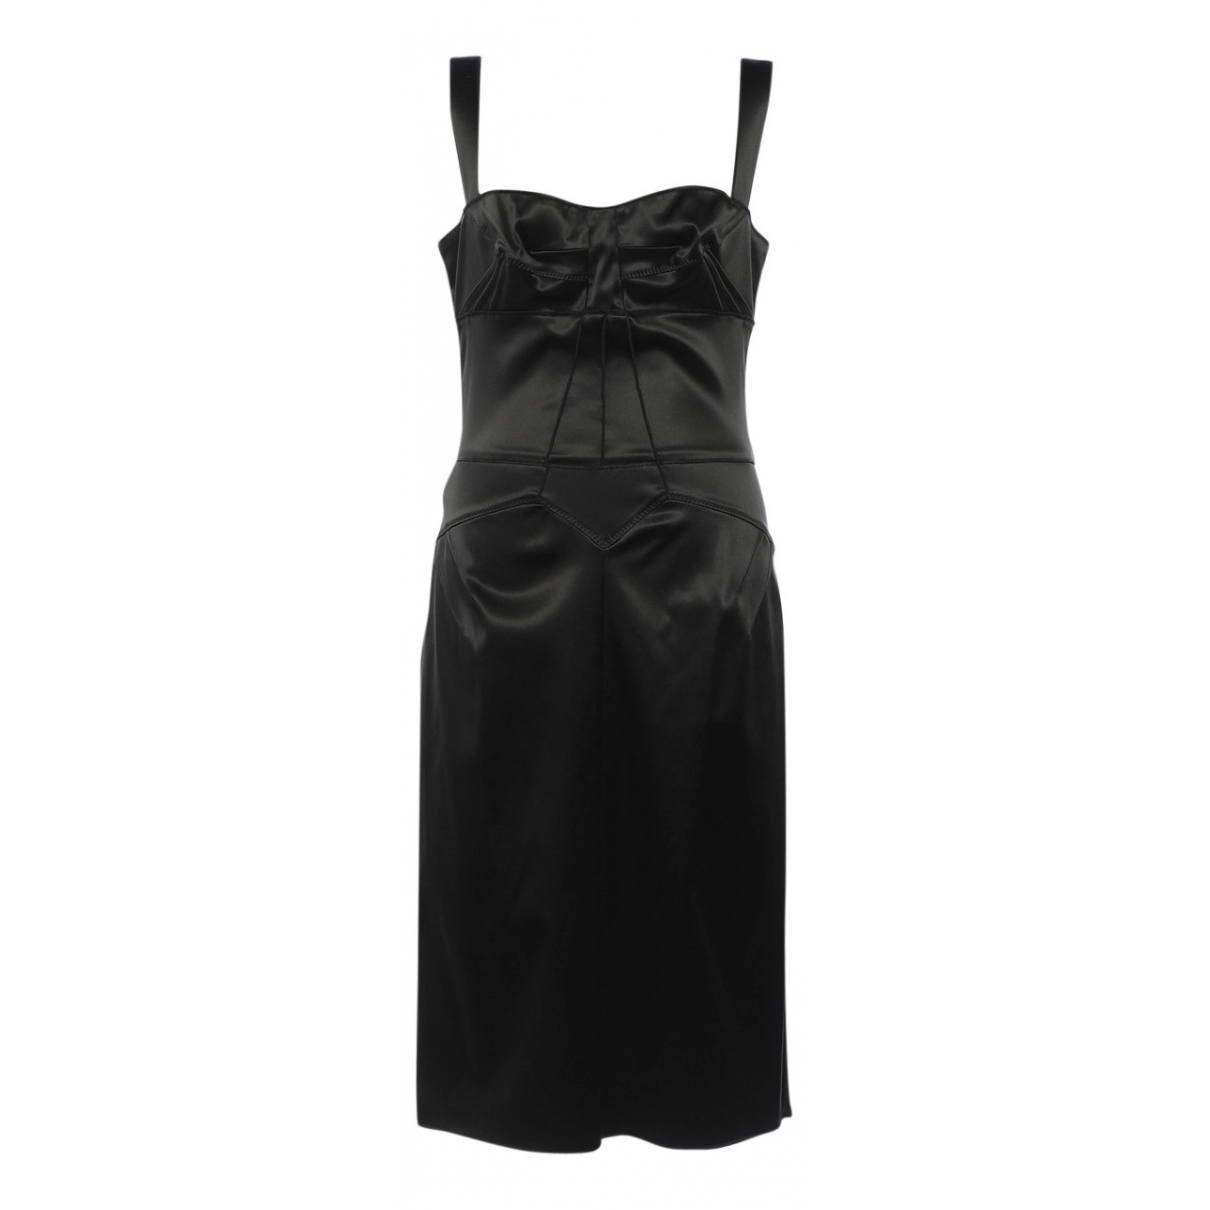 Dolce & Gabbana \N Black dress for Women 40 IT